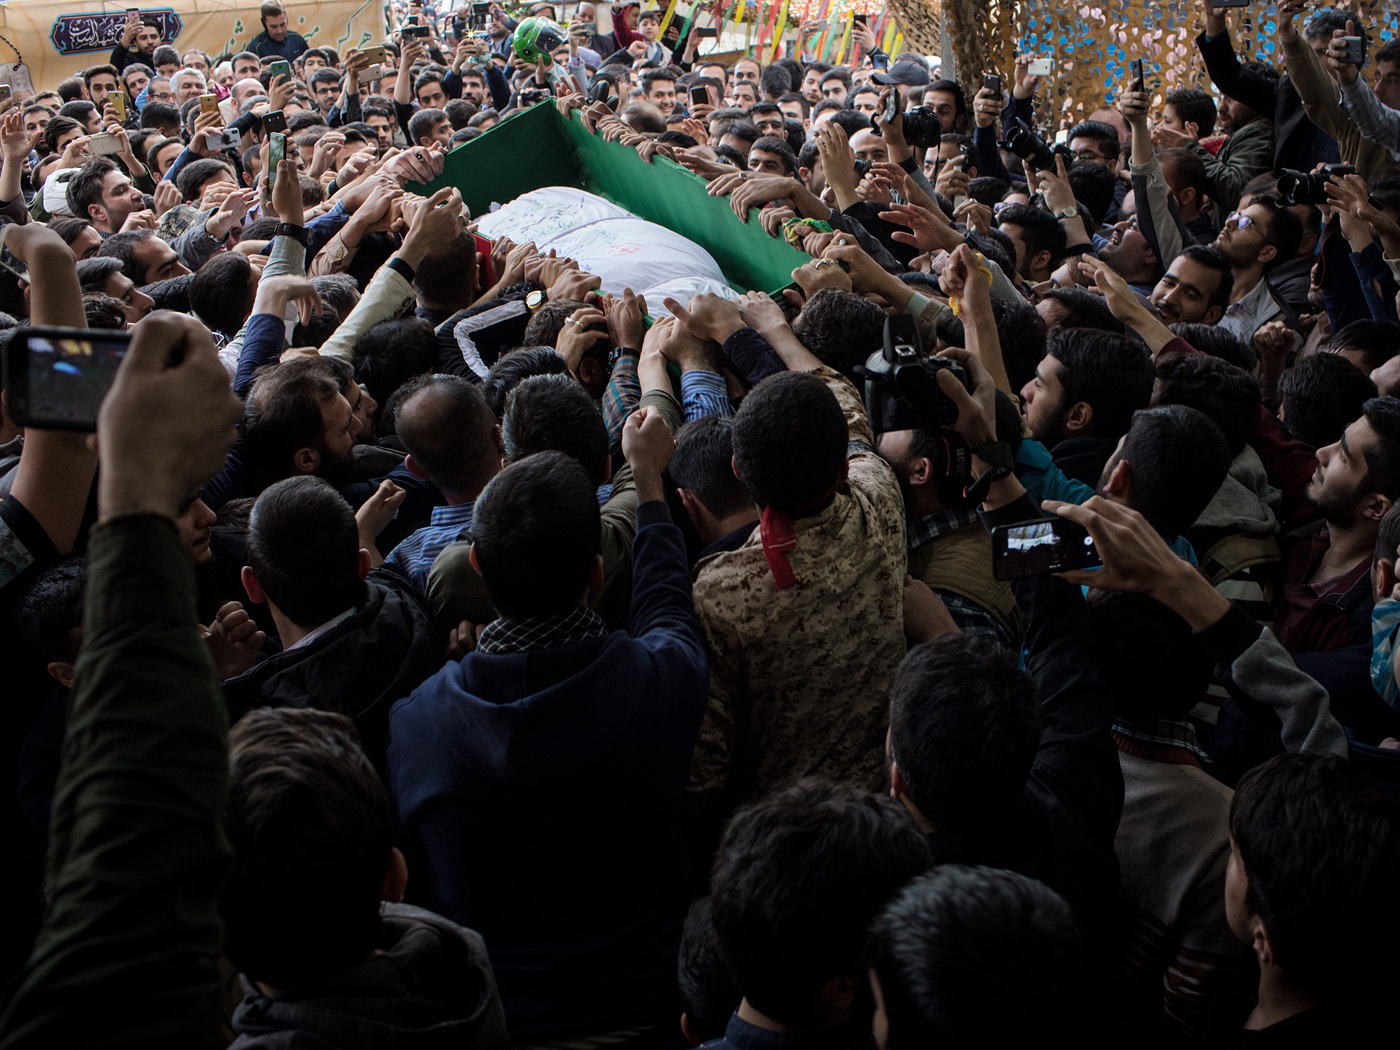 Mourners try to reach the coffin carrying the corpse of Majid Ghorbankhani who died 3 years earlier in Khan Tuman during the Syrian conflict to earn blessings. The corpse has been identified through its DNA and was handed over to the family of the martyr prior to a public farewell ceremony.